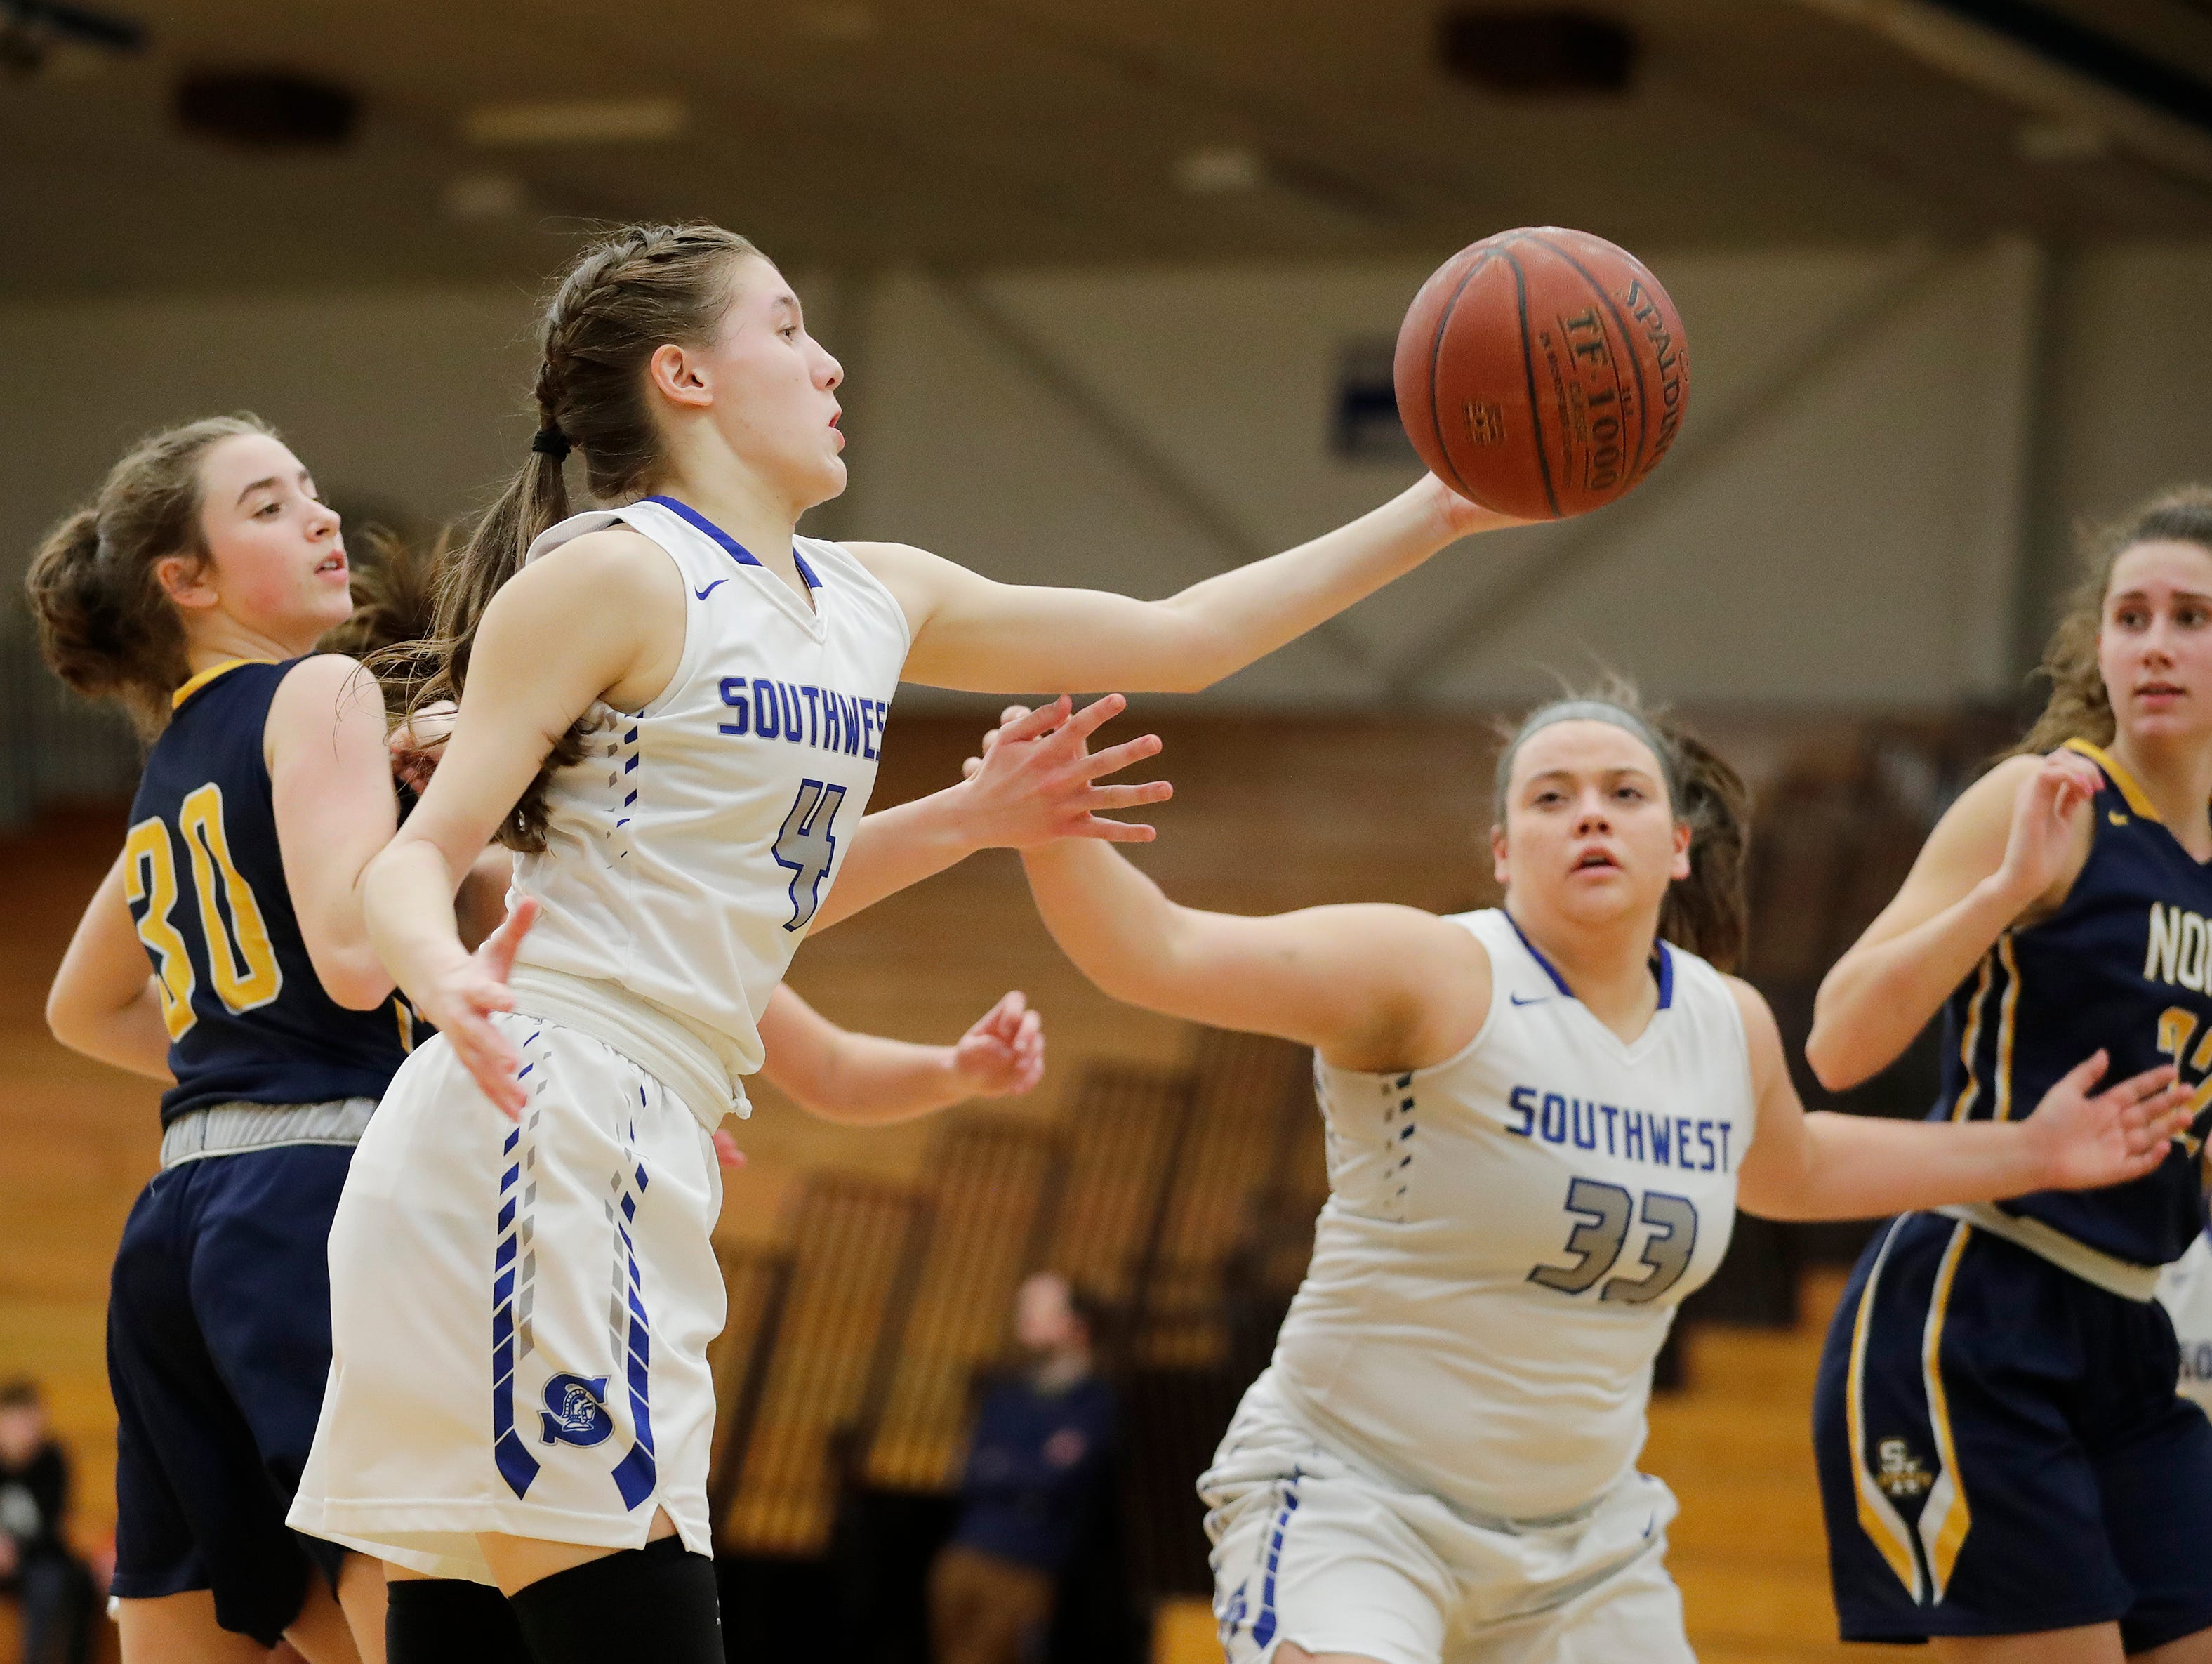 Green Bay Southwest's Caitlyn Thiel (4) grabs a rebound against Sheboygan North in a girls basketball game at Southwest High School on Tuesday, February 5, 2019 in Green Bay, Wis.